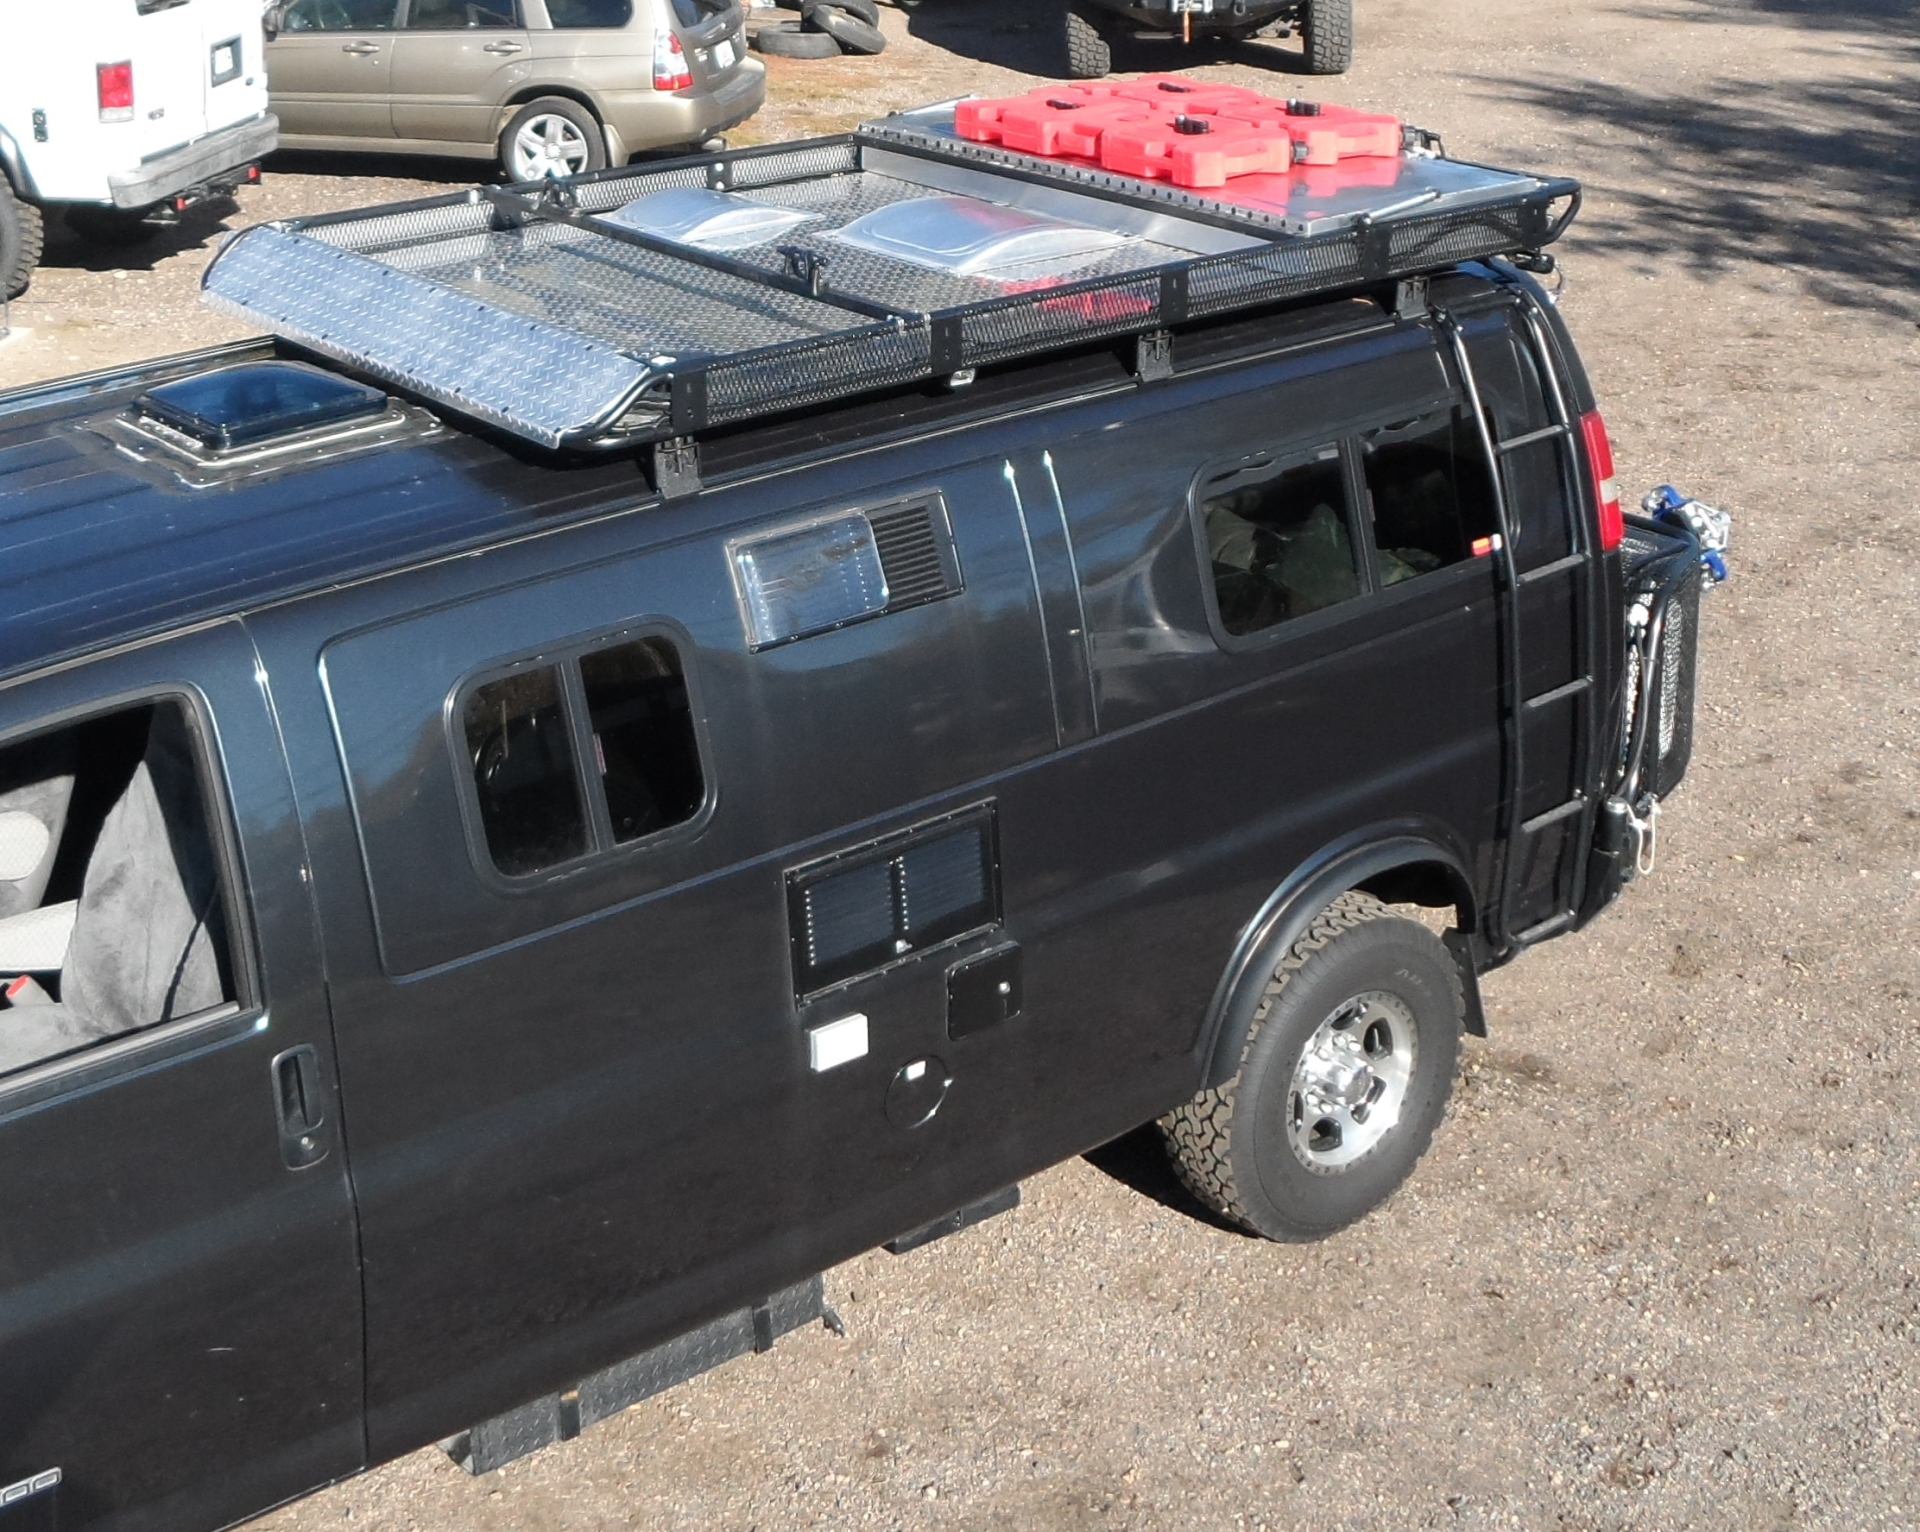 Lifted 2wd Chevy Express camper van